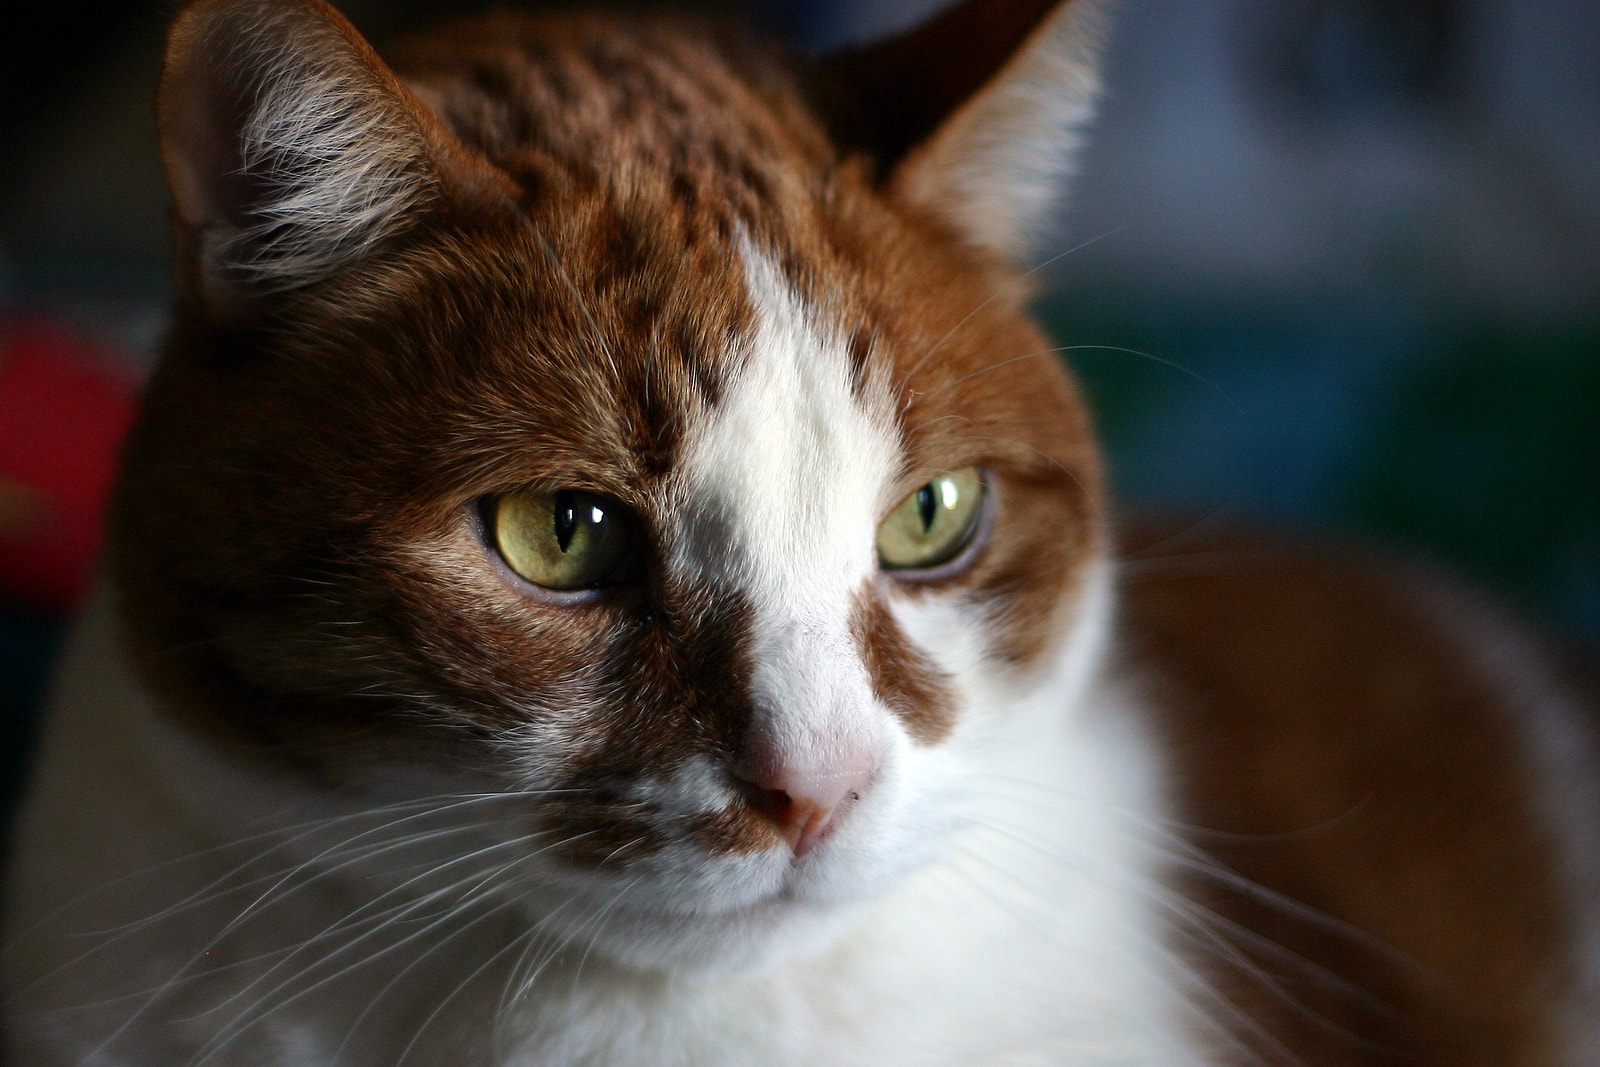 Brown, orange and white cat up close